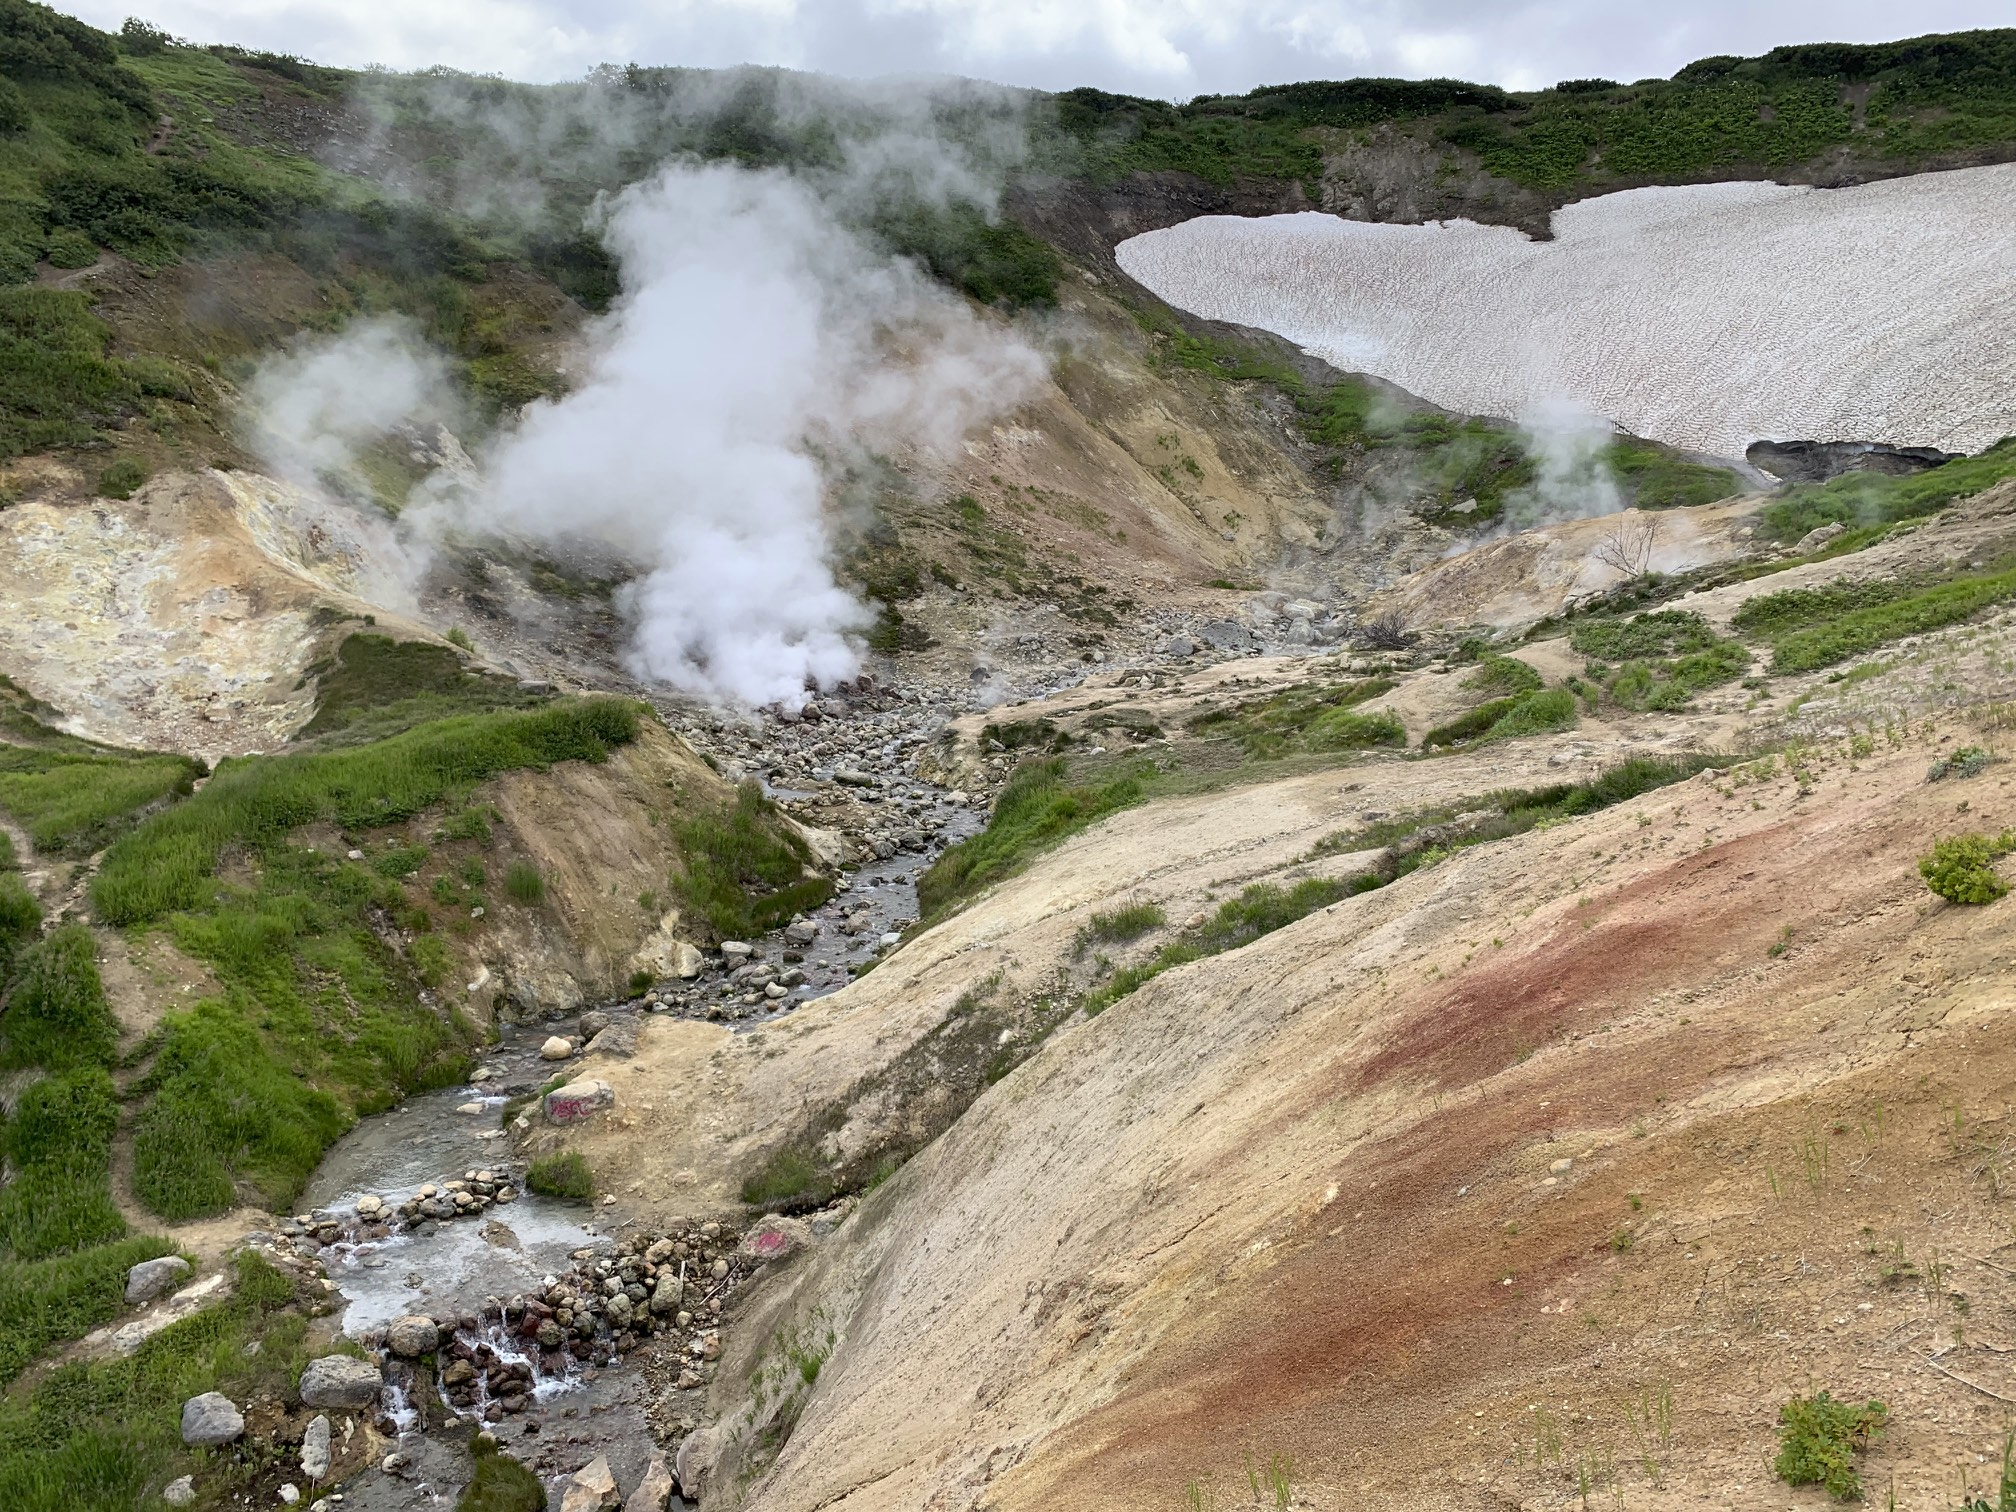 The Dachnye Hot Springs. There are numerous boiling and pulsating springs, fumaroles the temperature of which can reach up to 250C.